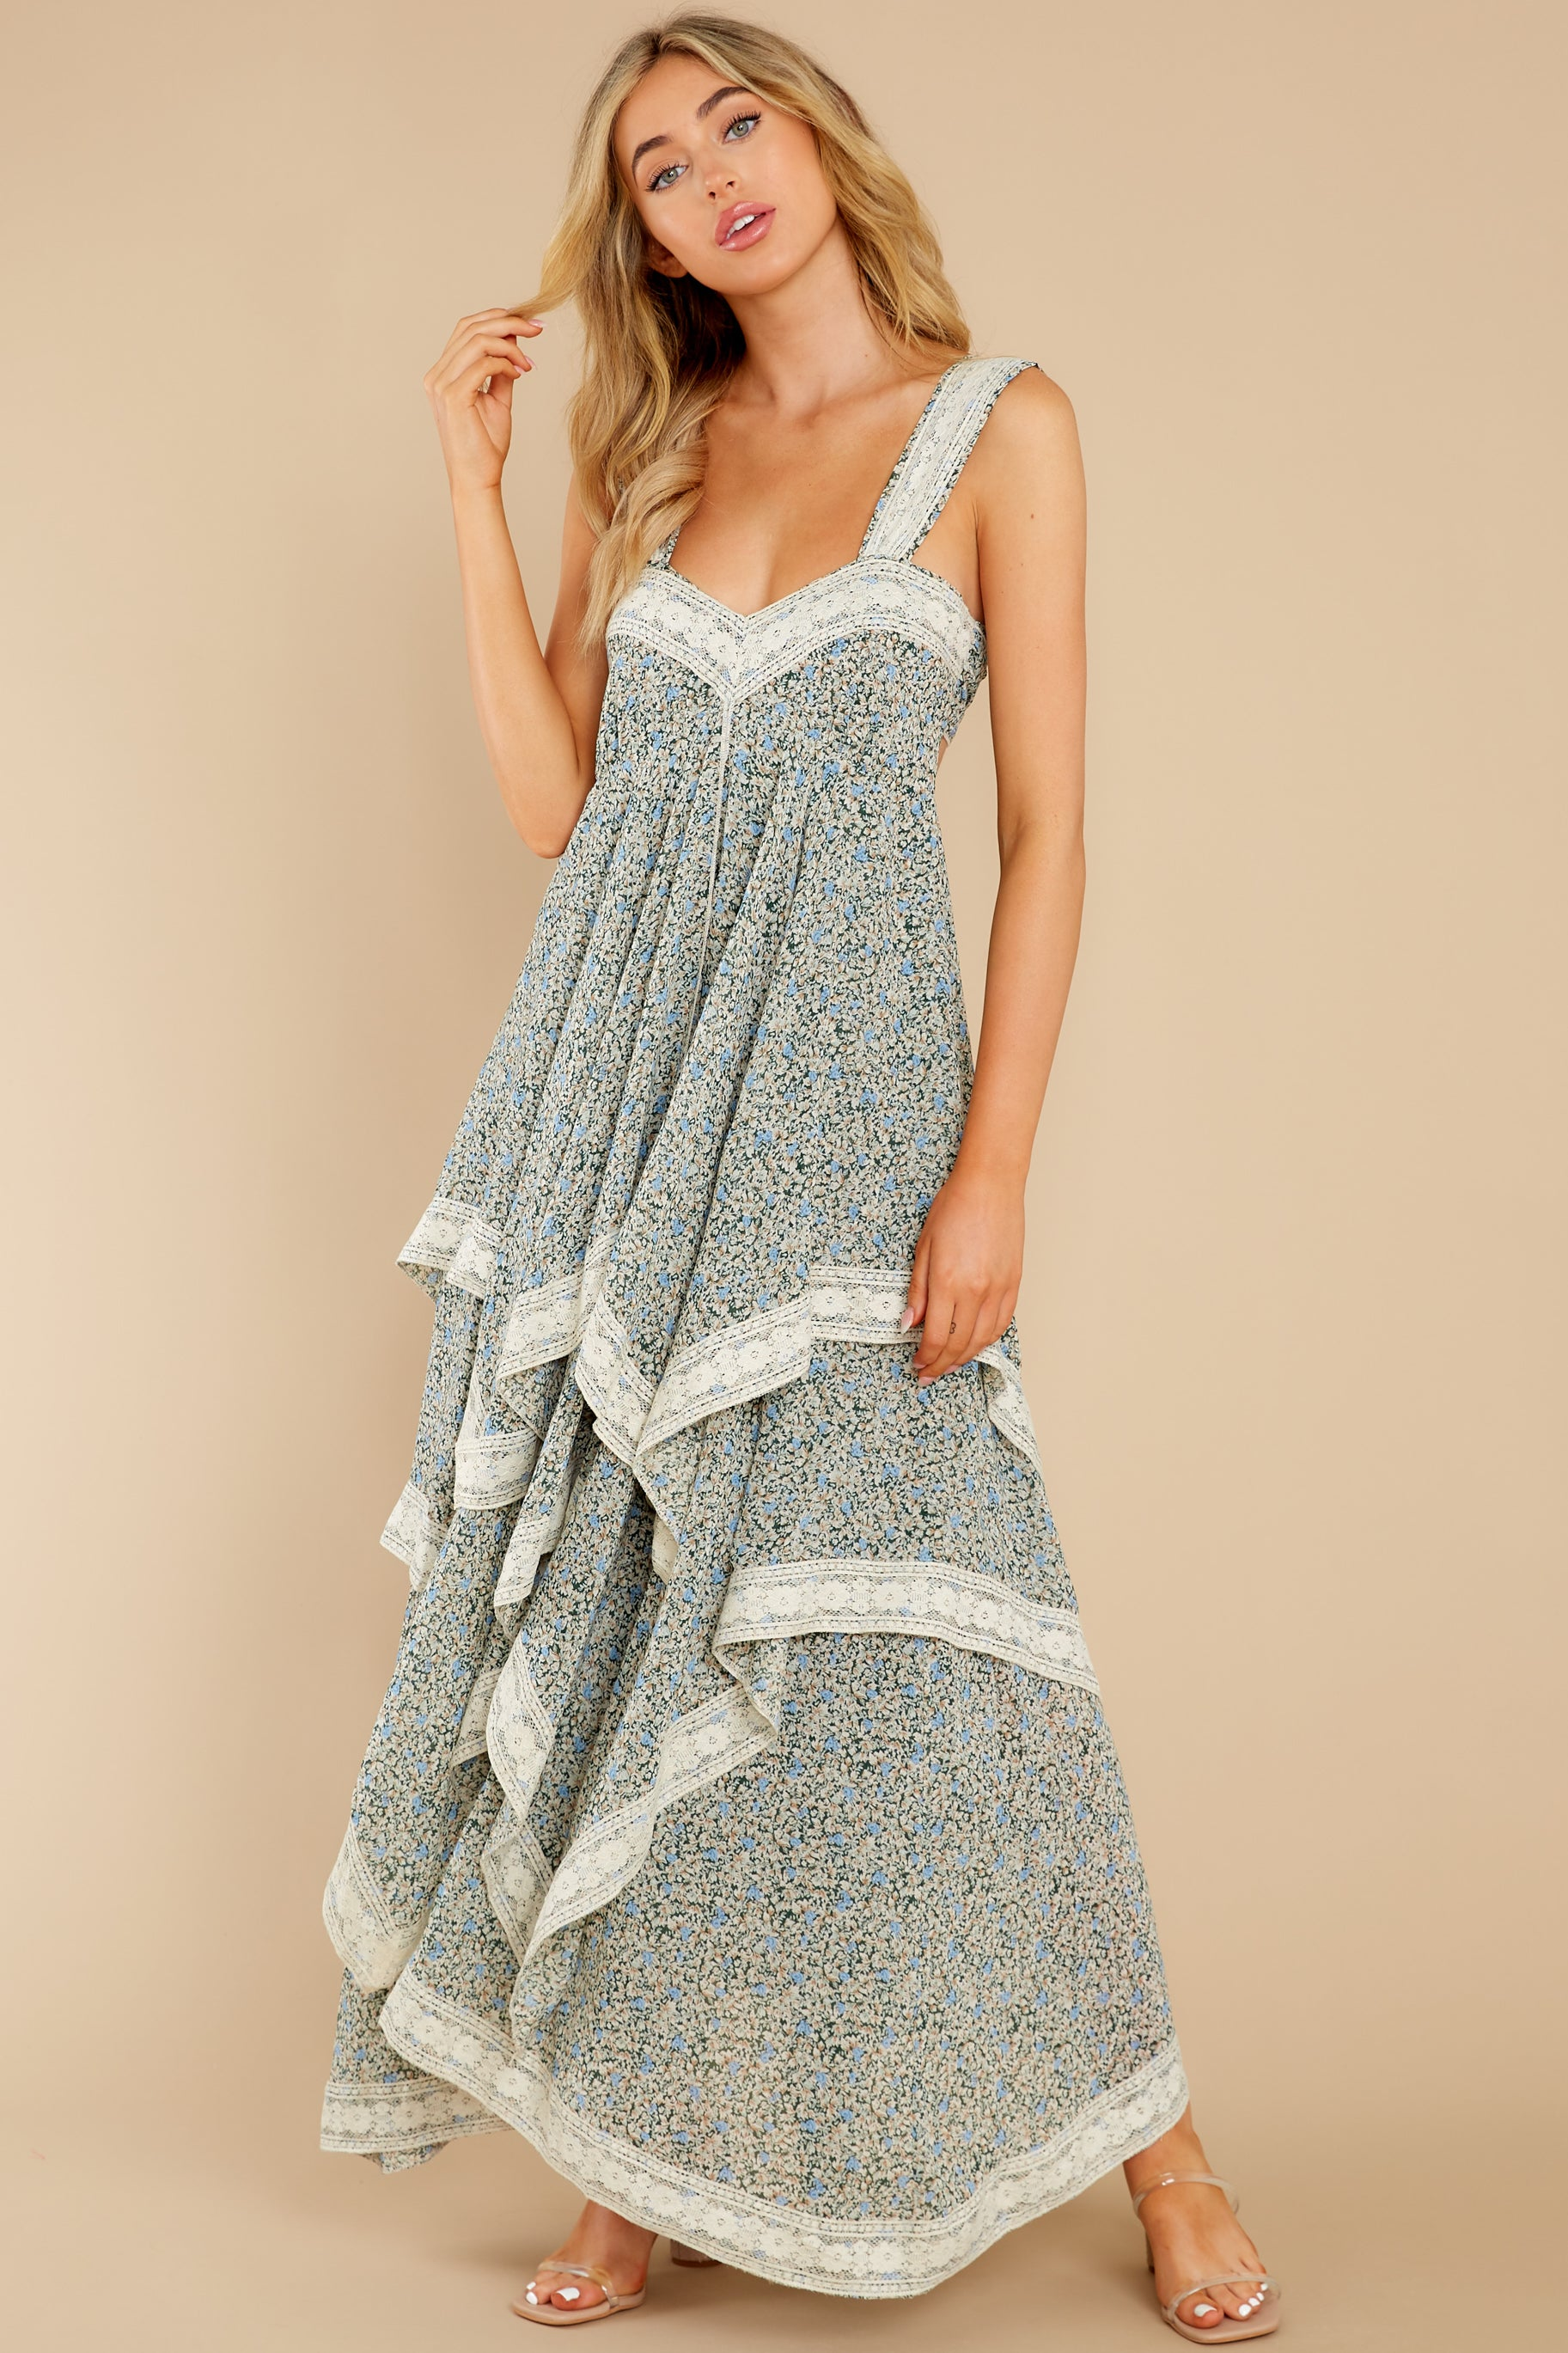 3 Fall In Love Sage Green Floral Print Maxi Dress at reddress.com